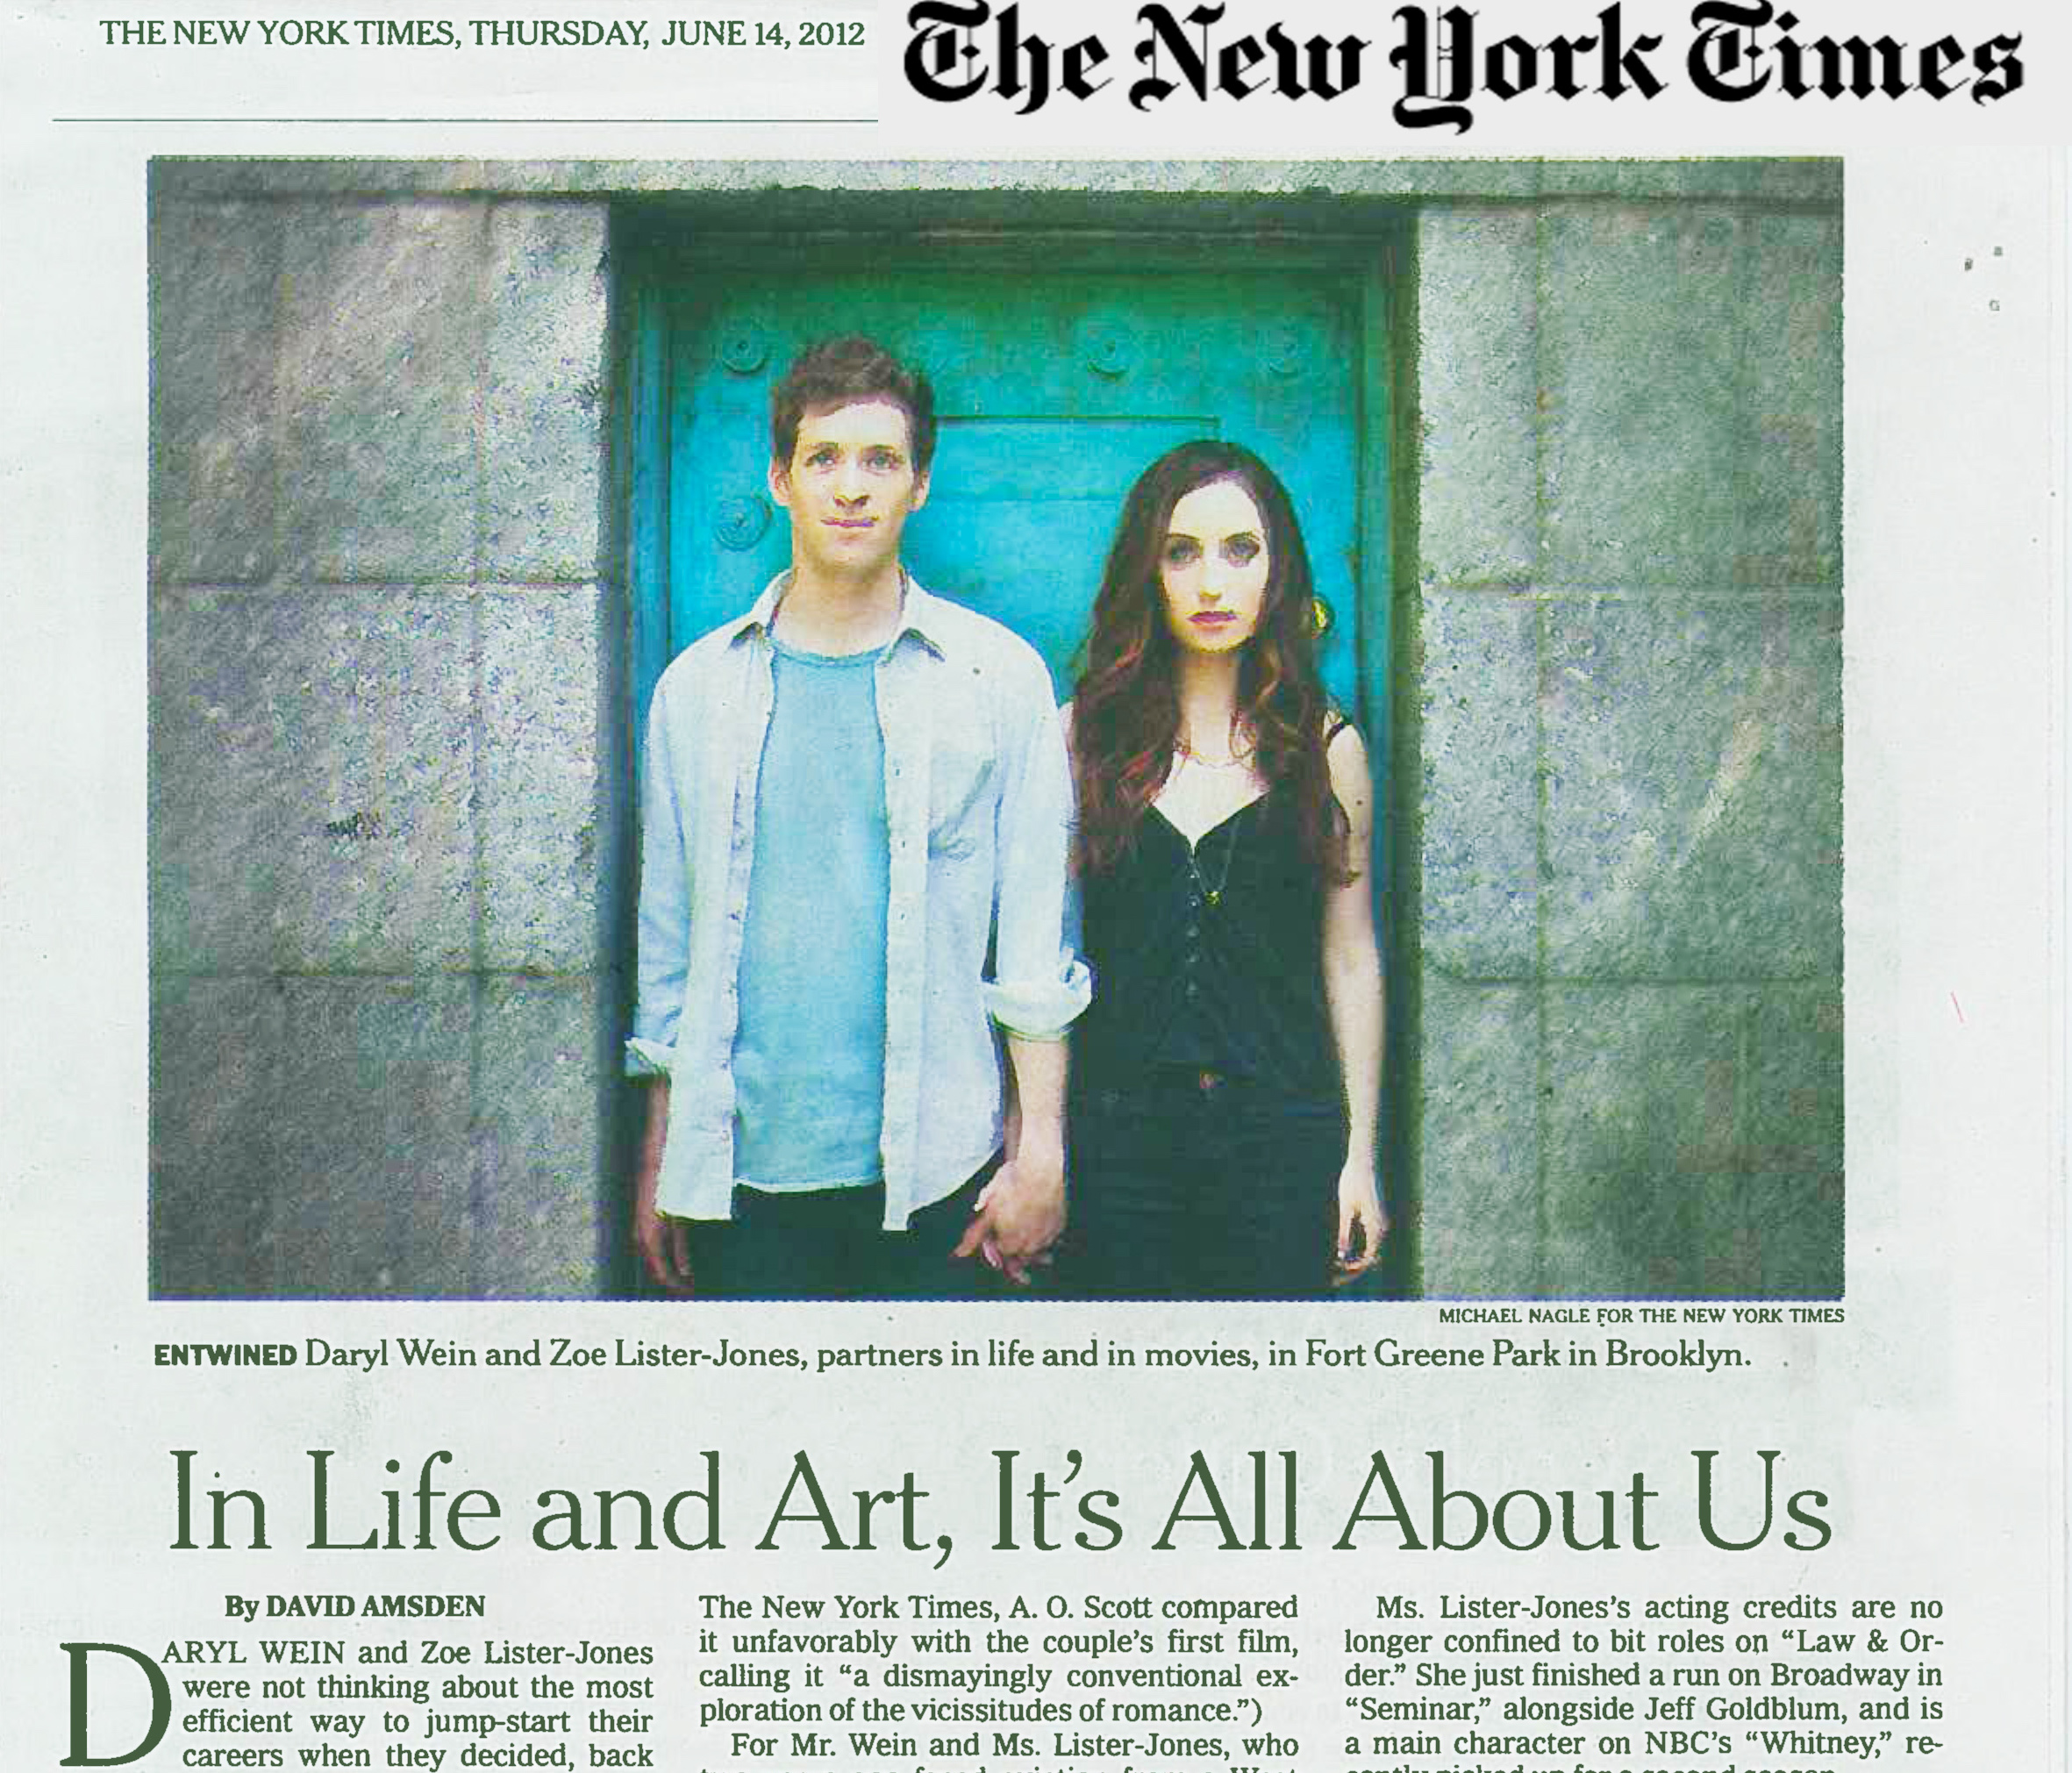 Daryl and Zoe New York Times style sectioncropped.jpg